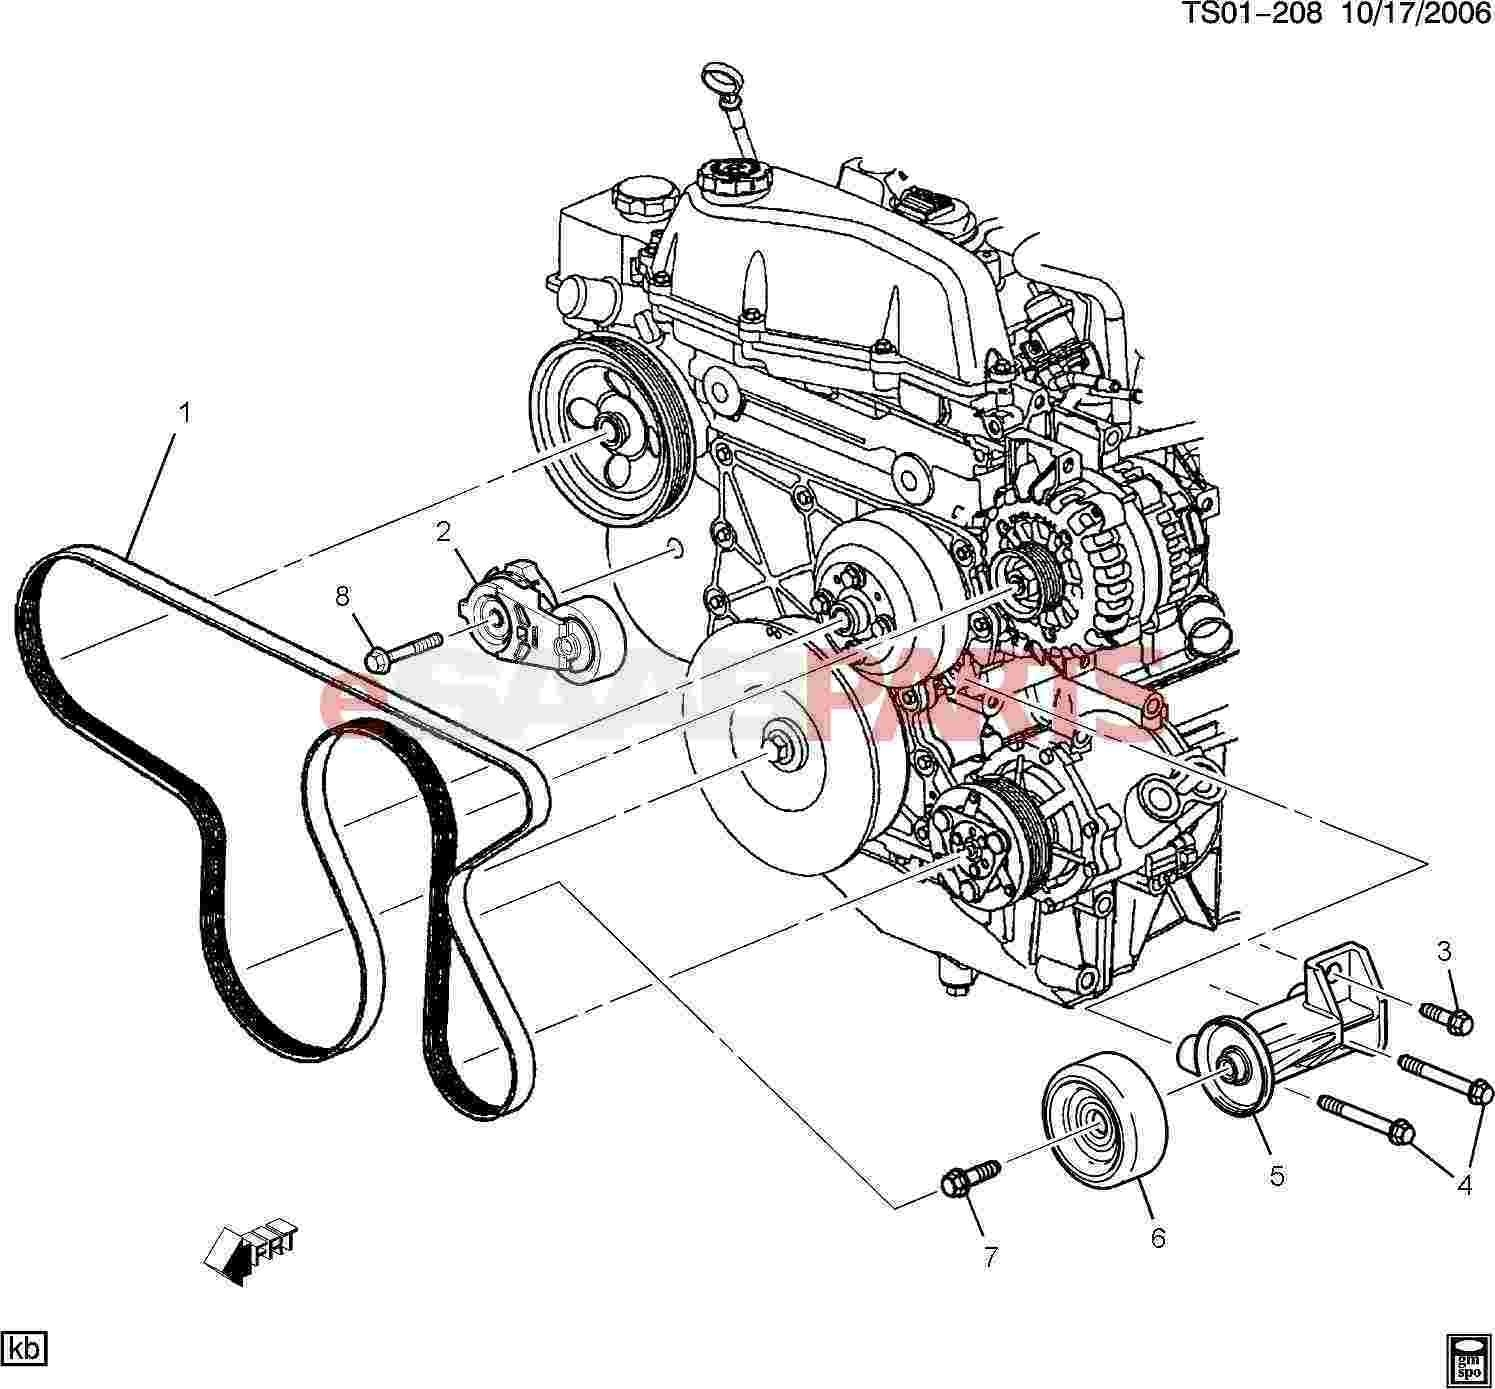 2004 toyota Tacoma Parts Diagram 2001 toyota Ta A Parts Diagram Of 2004 toyota Tacoma Parts Diagram 2000 toyota Ta A Steering Parts Diagram Information Wiring